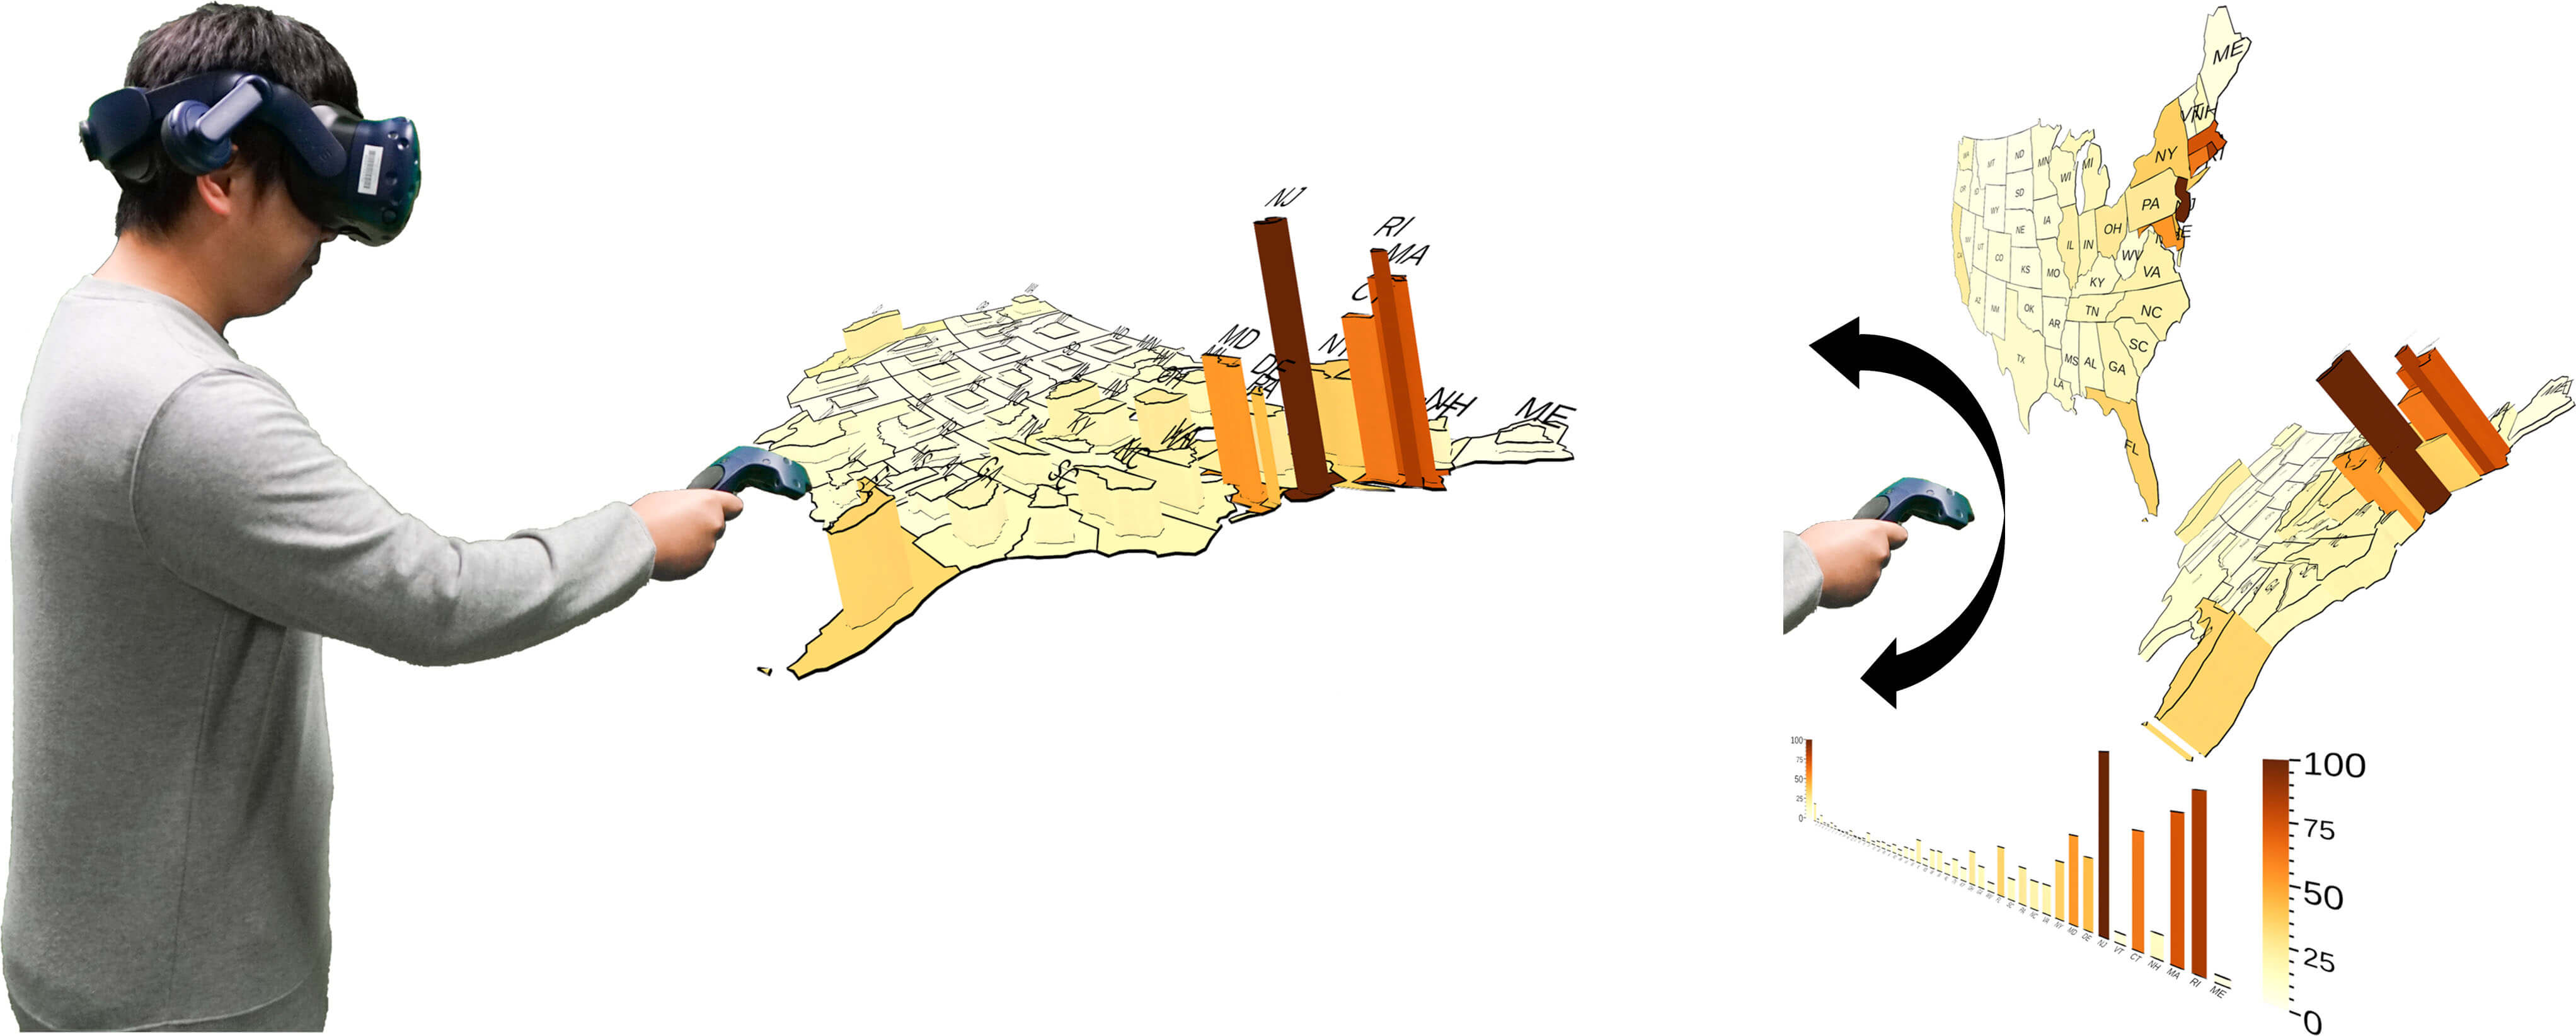 Tilt Map: Interactive Transitions Between Choropleth Map, Prism Map and Bar Chart in Immersive Environments